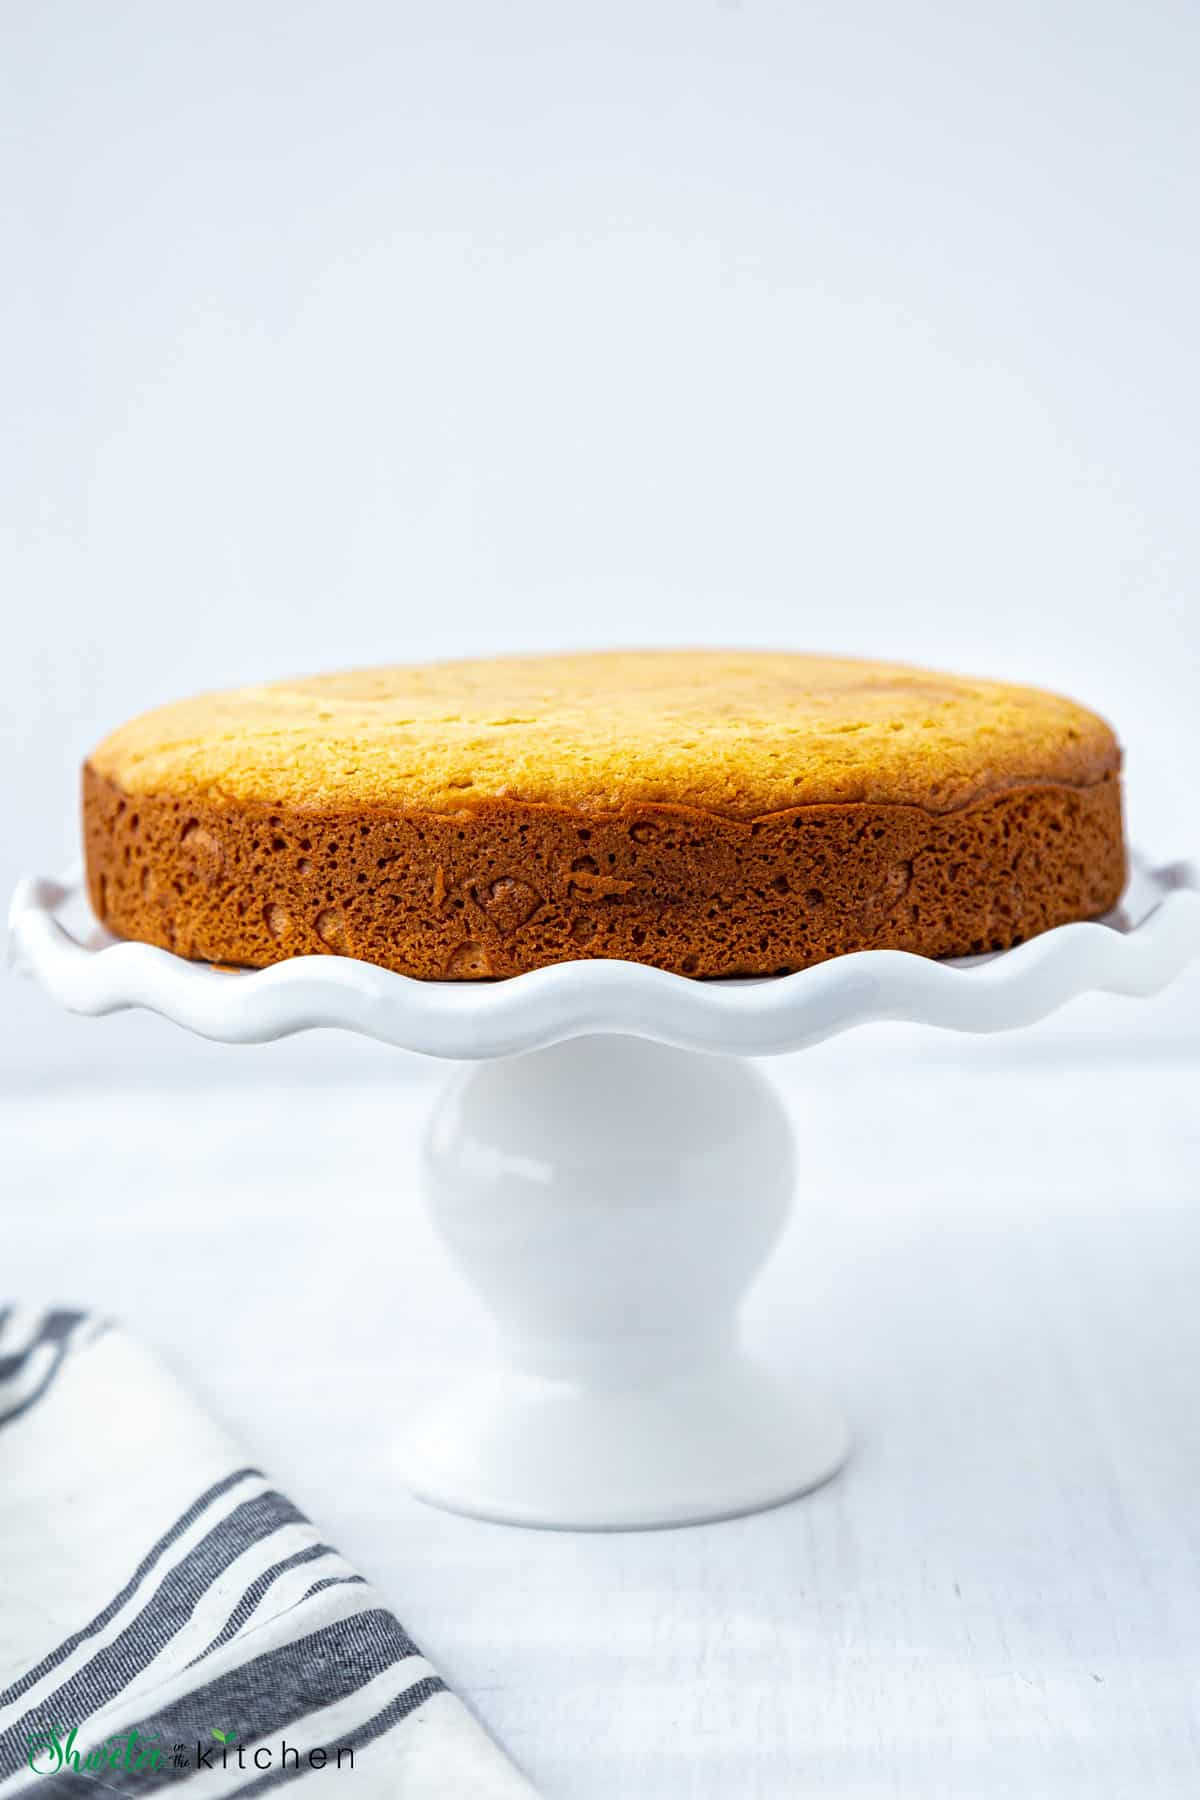 Top view of eggless vanilla sponge cake on a white cake stand